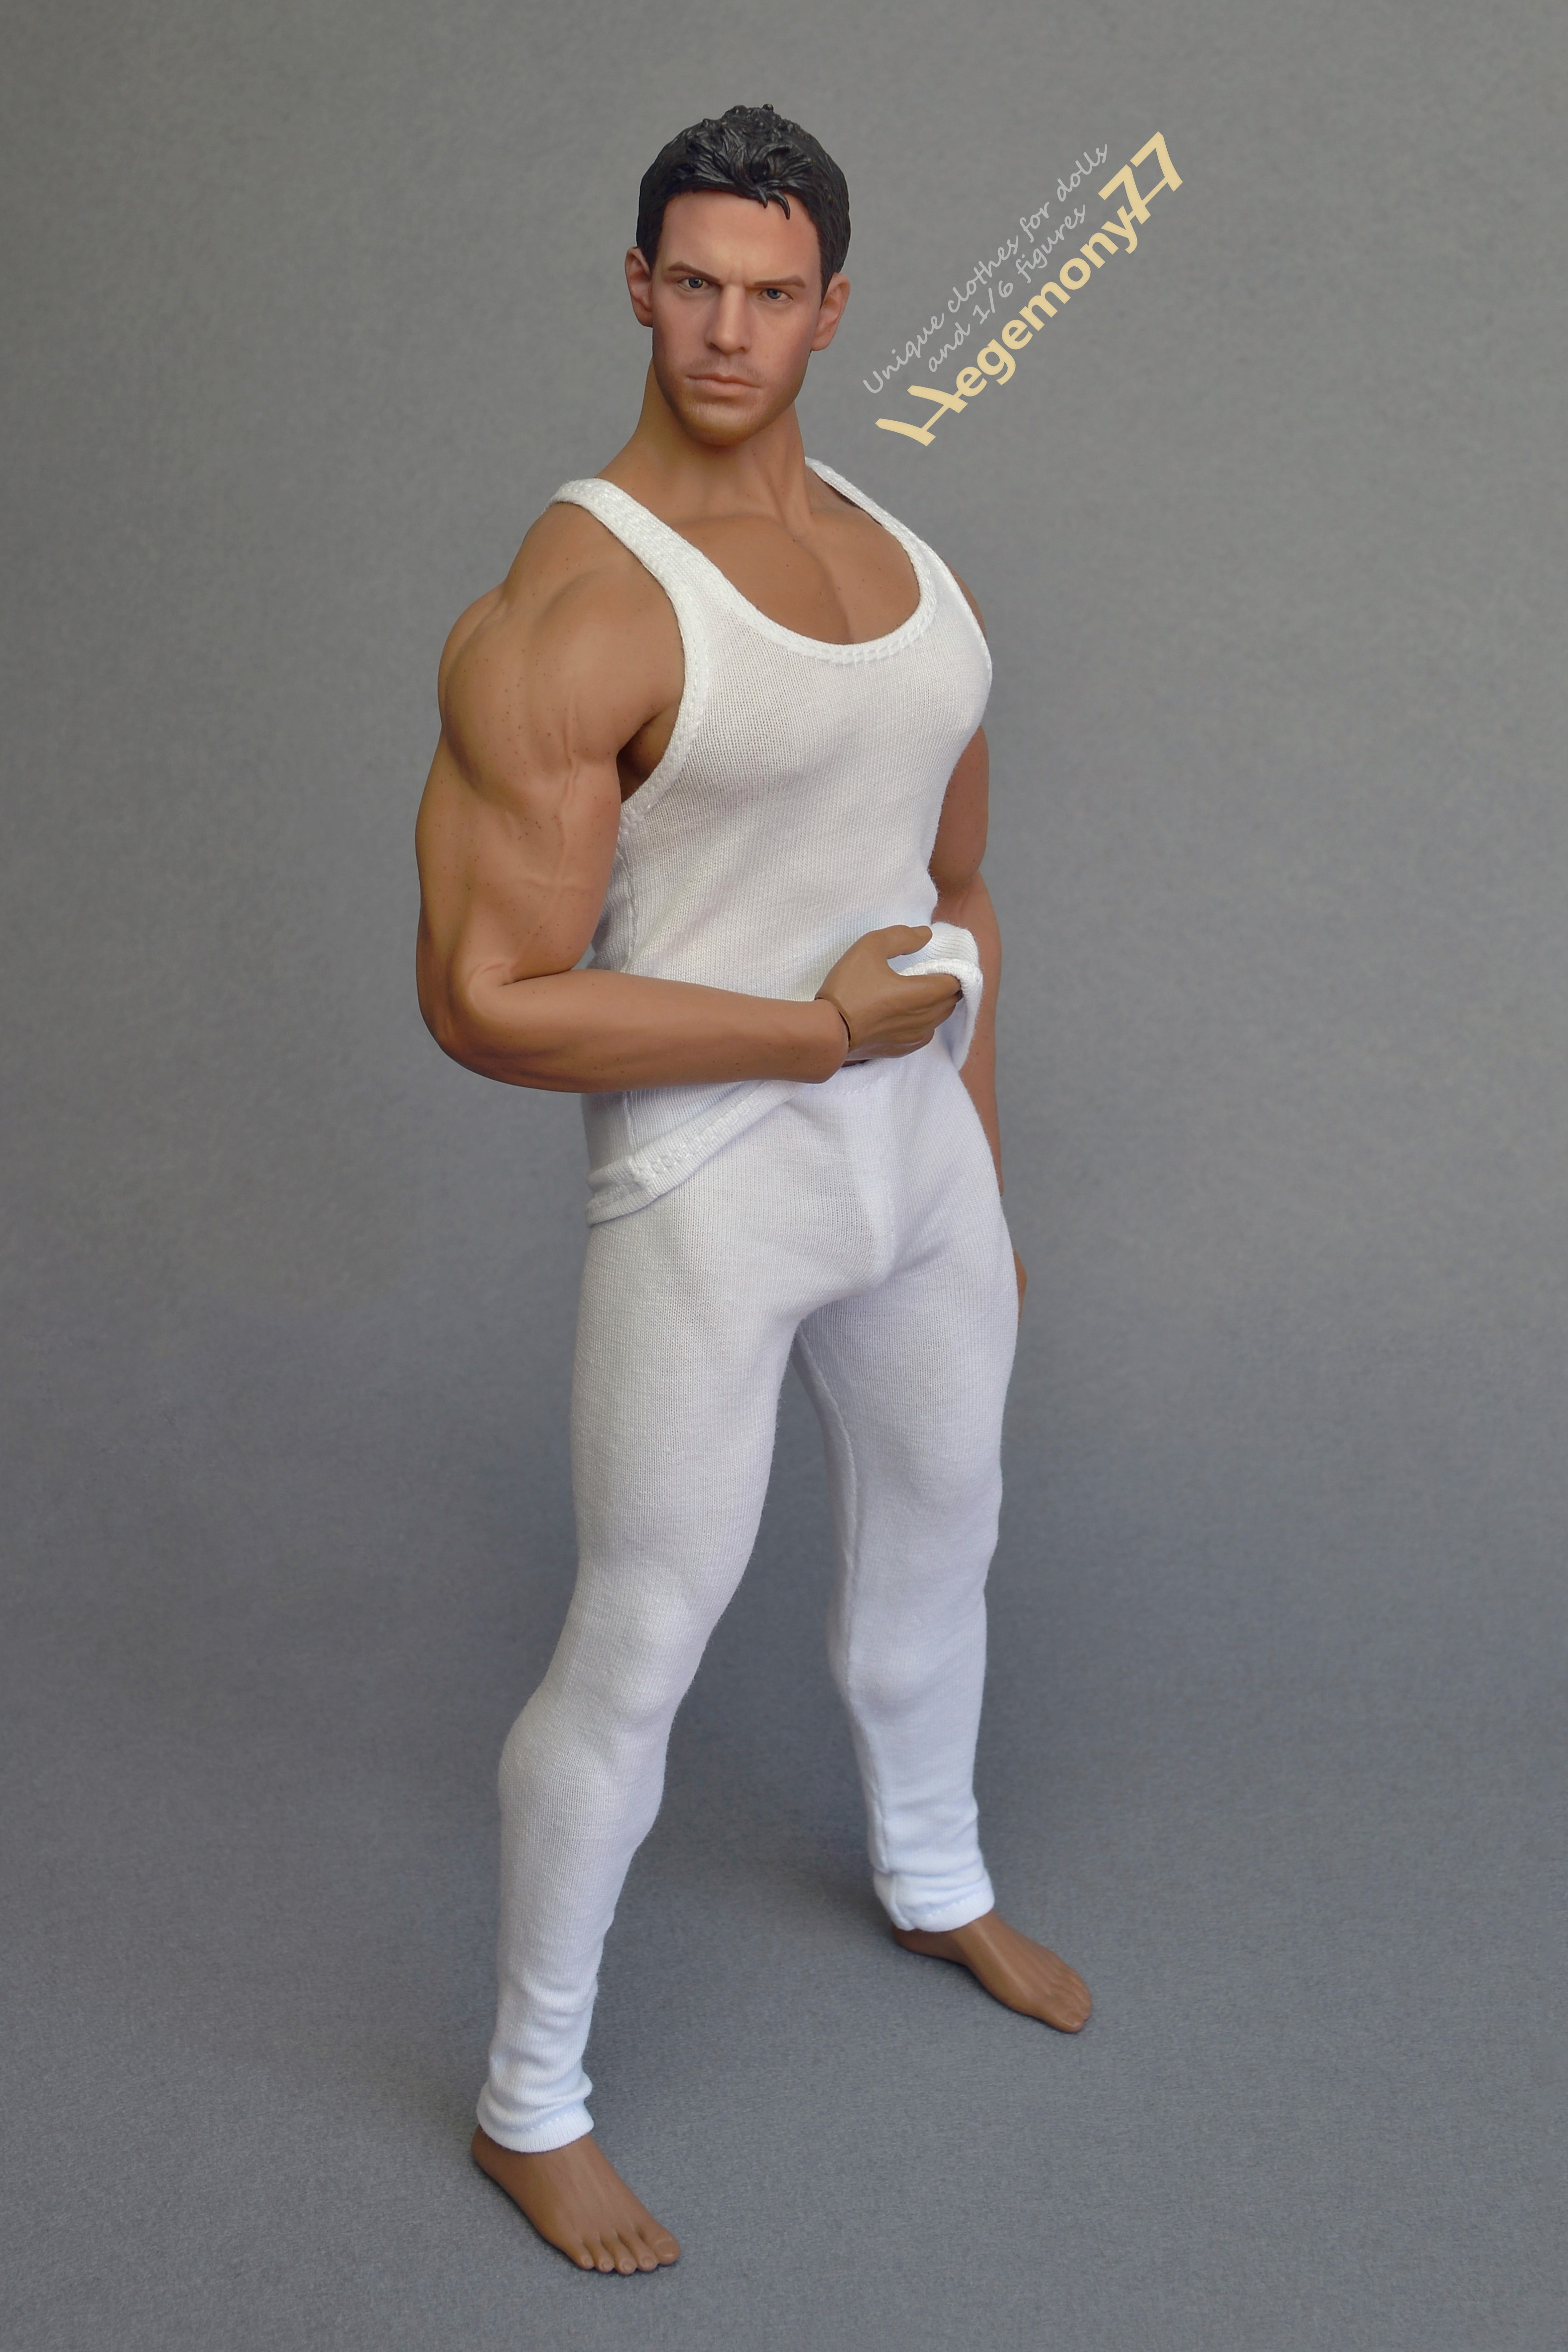 Phicen 1/6 Scale Super Flexible Male Muscular Seamless